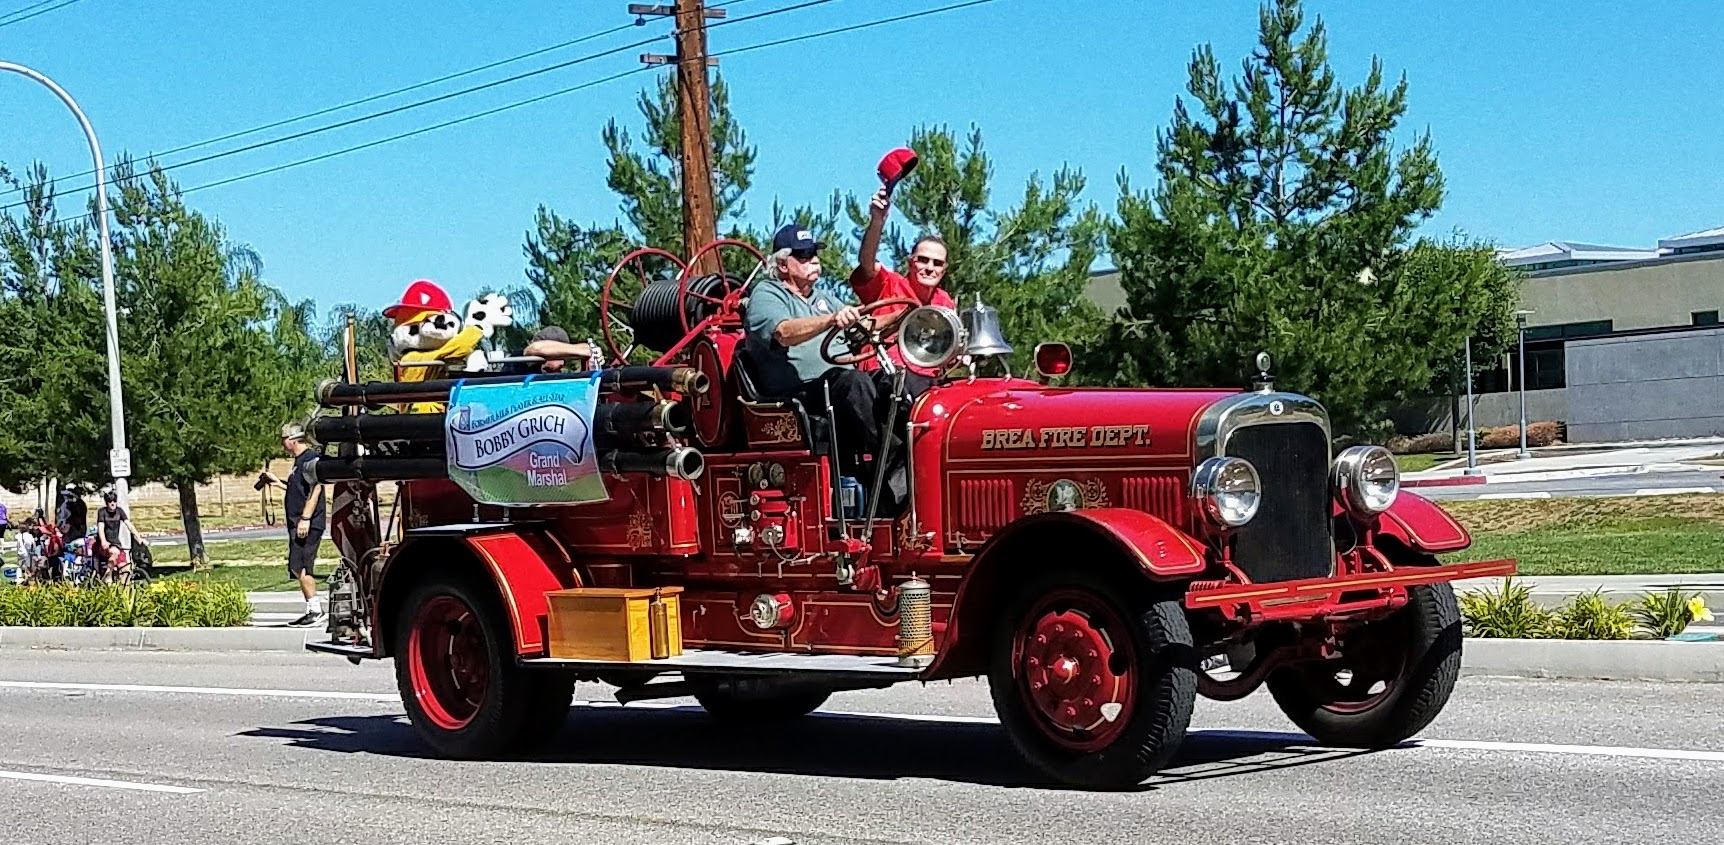 Grand Marshall Bobby Grich, former California Angels' 2nd baseman (being driven by former Brea fireman Dave Mahlstede, class of 63.) (Photo Courtesy of Dena Sommer)